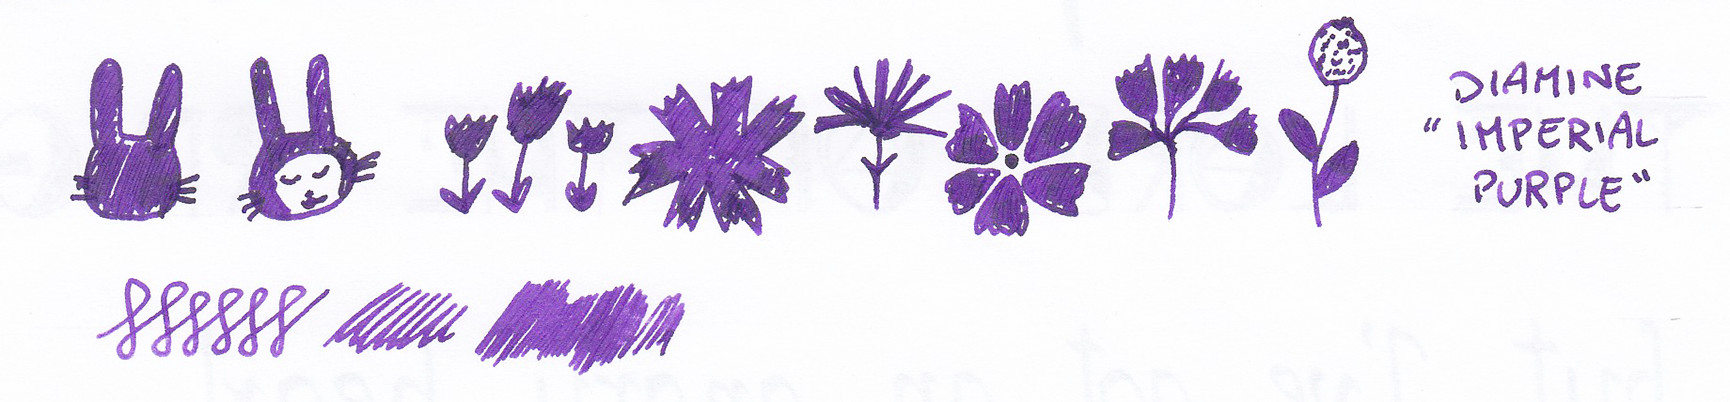 Diamine Imperial Purple doodle Flowers 01 psd.jpg